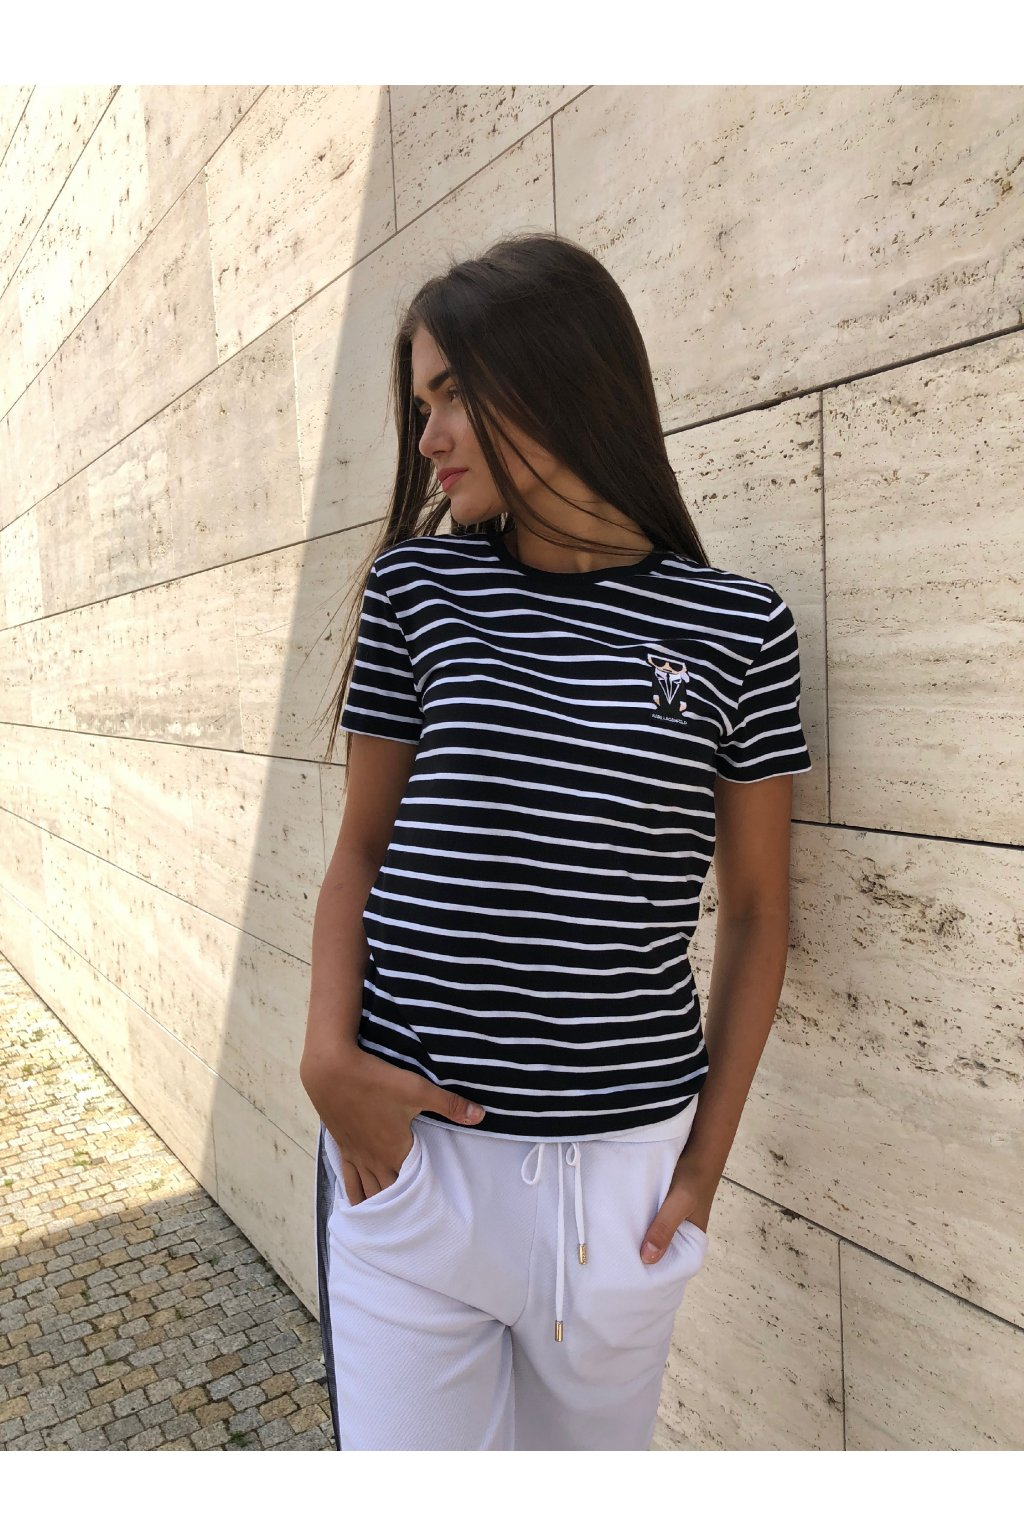 damske tricko karl lagerfeld kocktail karl stripe patch tee black white eshopat cz 6